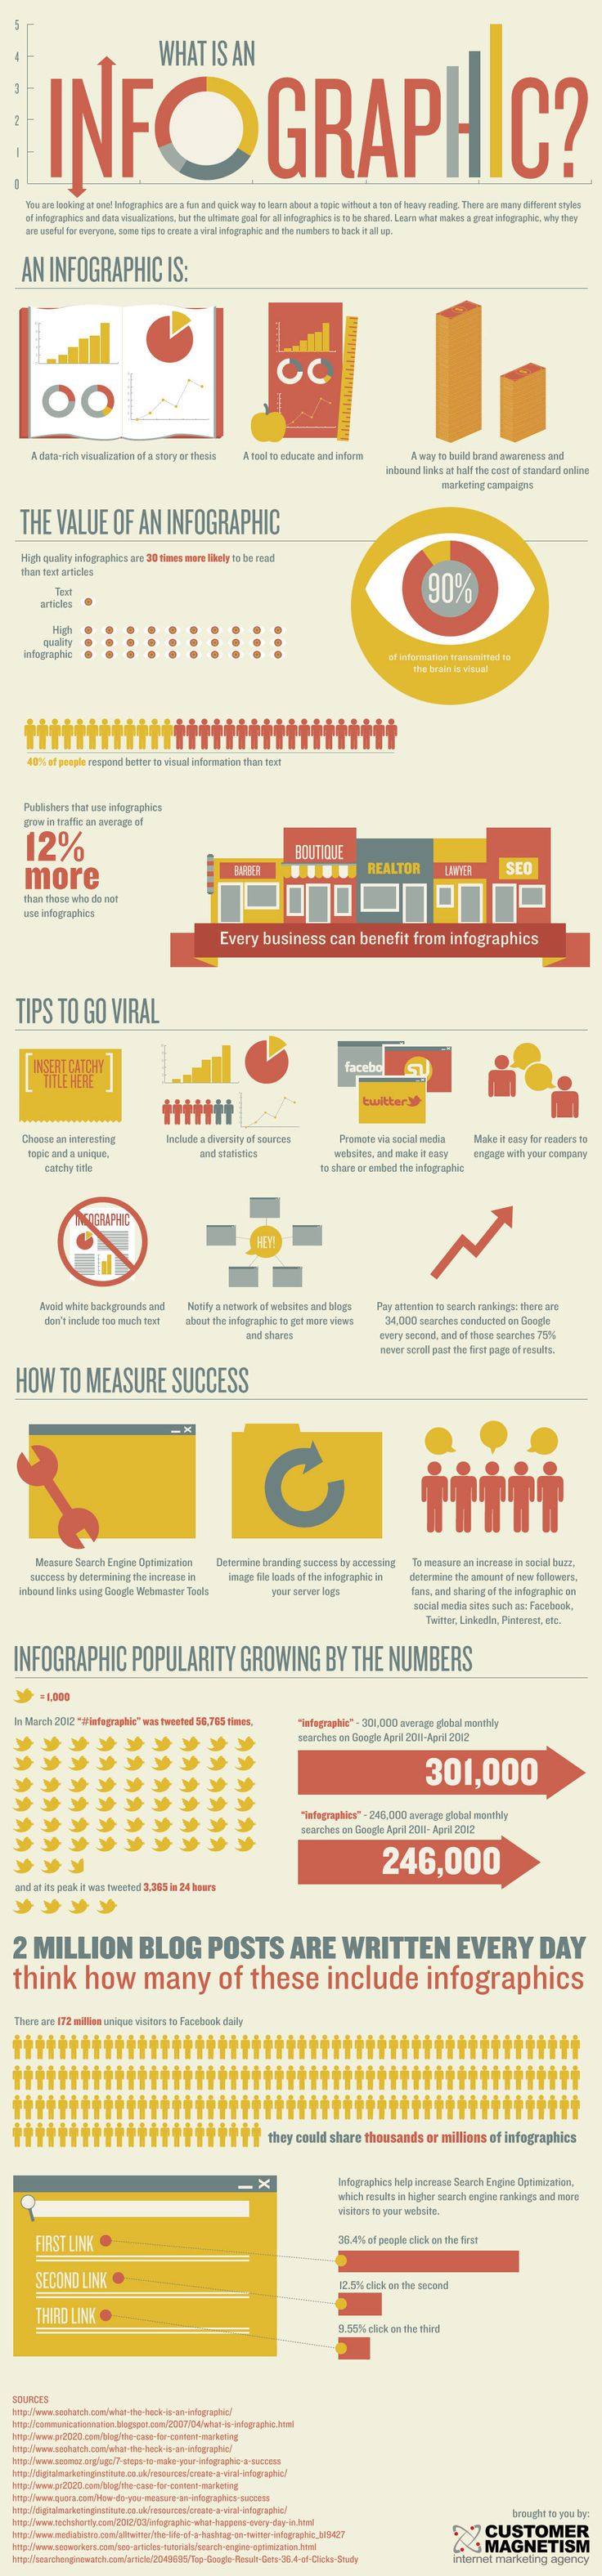 What is an infographic? An infographic about infographics